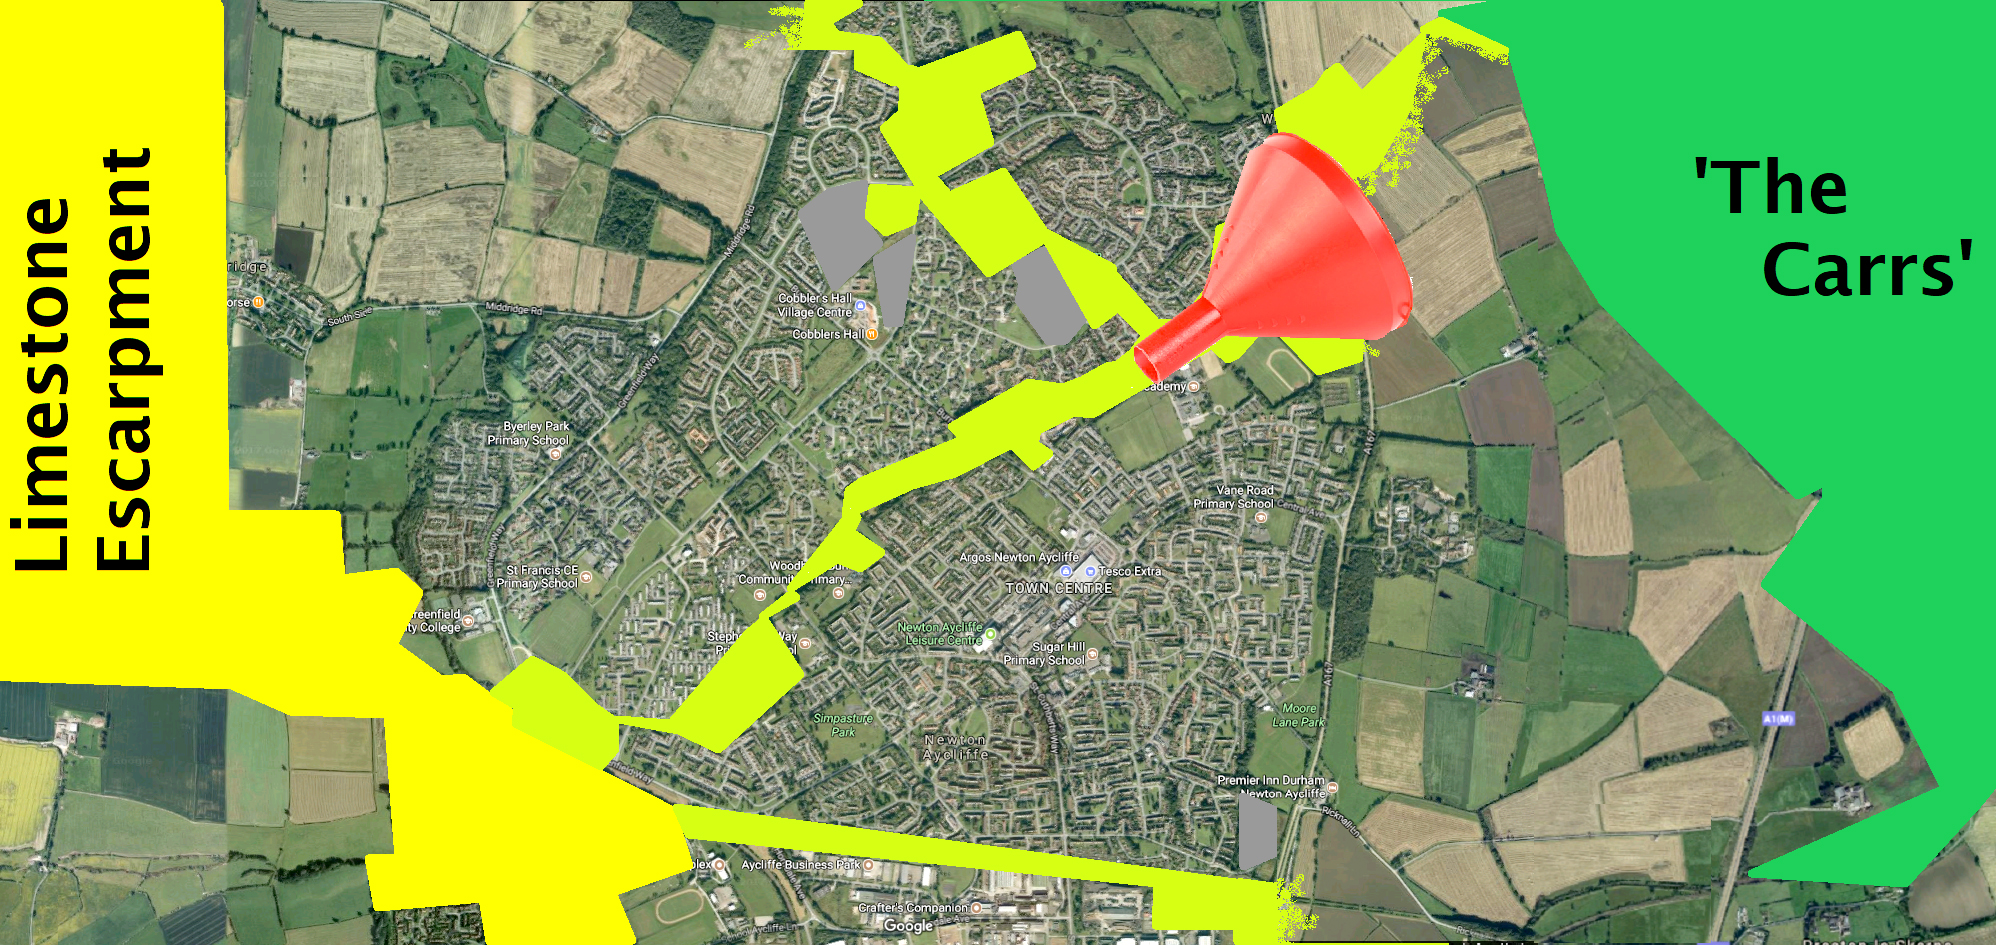 Councillor Opposes Building 430 Houses at Woodham